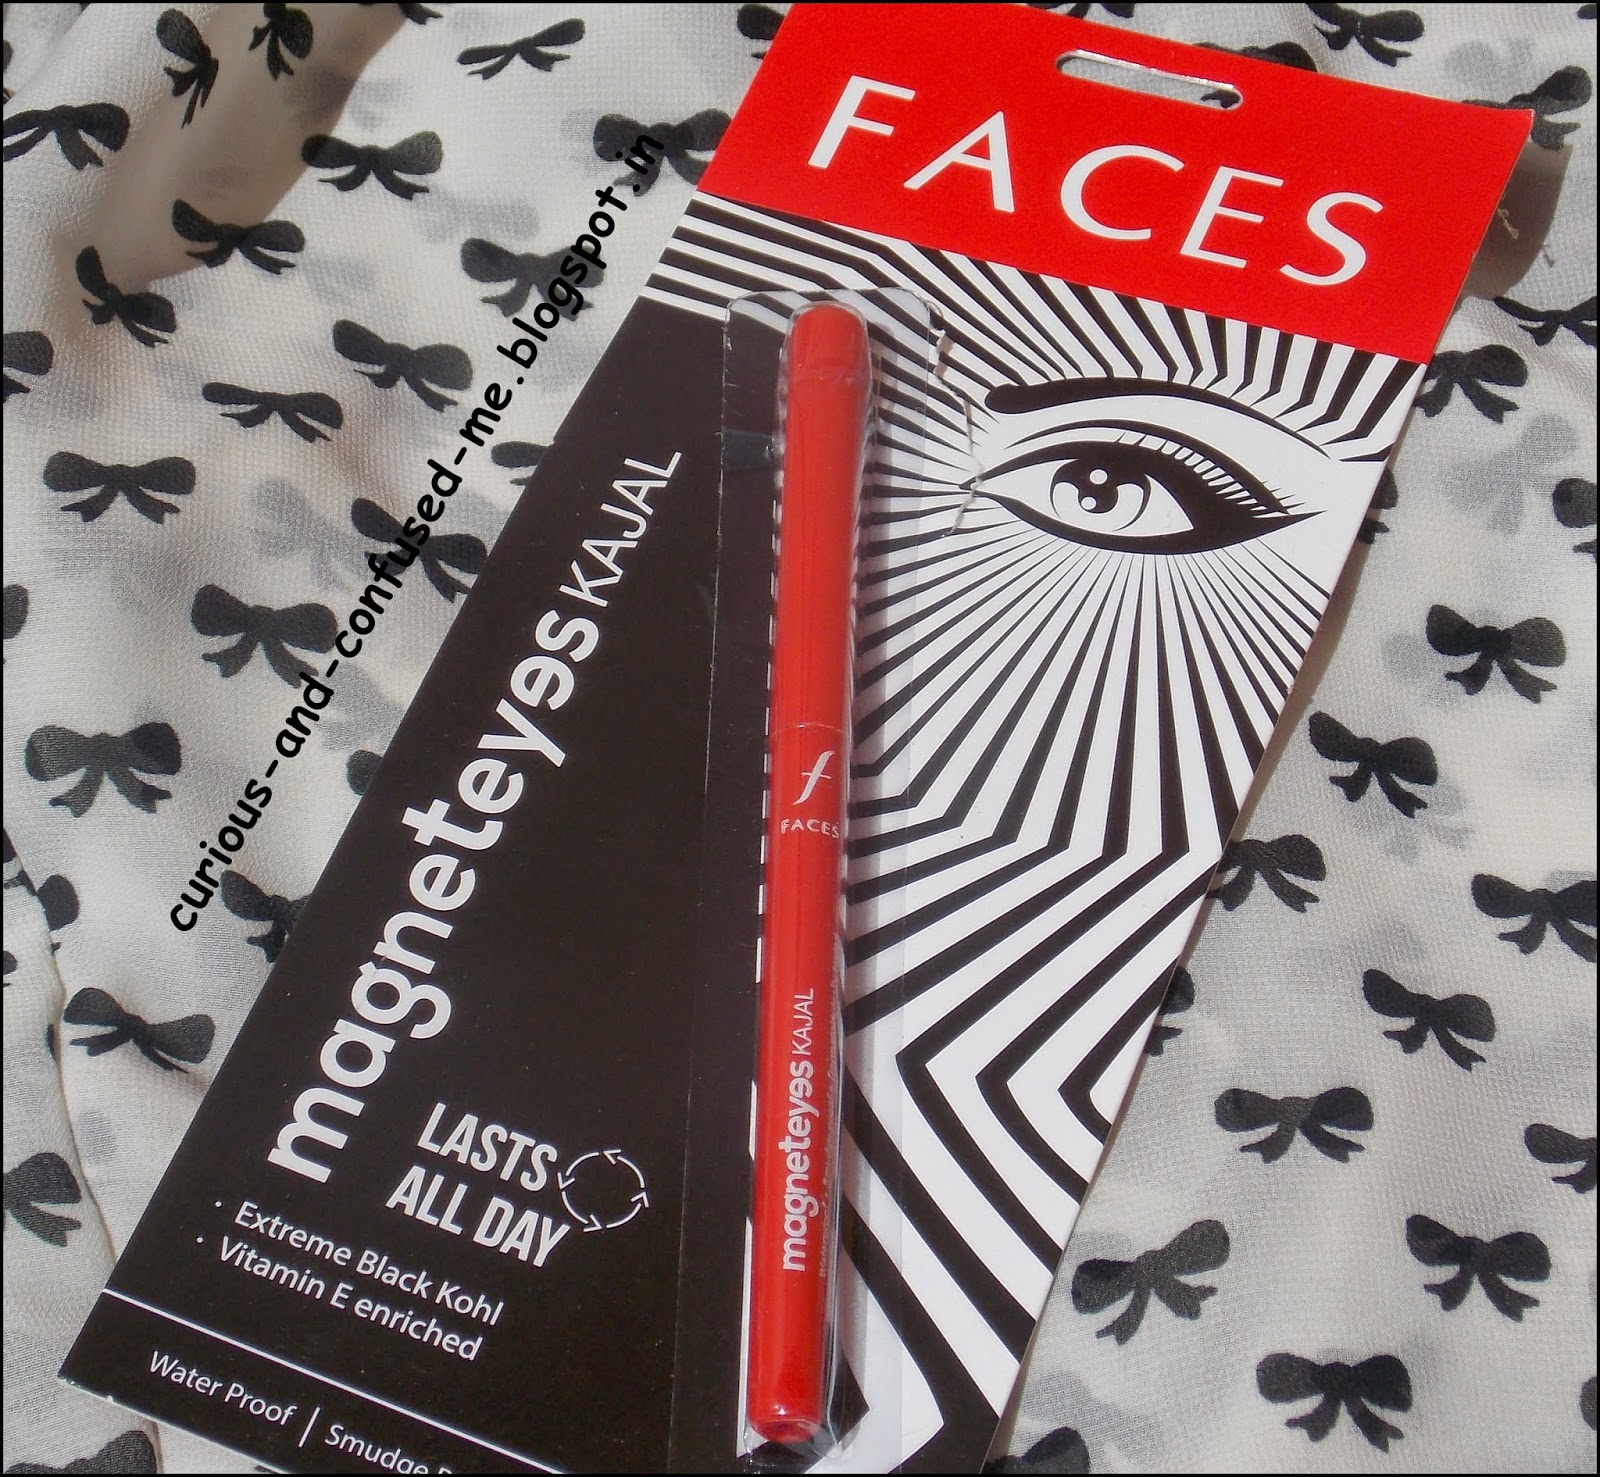 Faces Magnet eyes Kajal review, Faces Magnet eyes Kajal swatch, Kajals under 200 India, Best Kajals India, Longlasting kajal under 200 India, Faces Kajal india review, India kajal